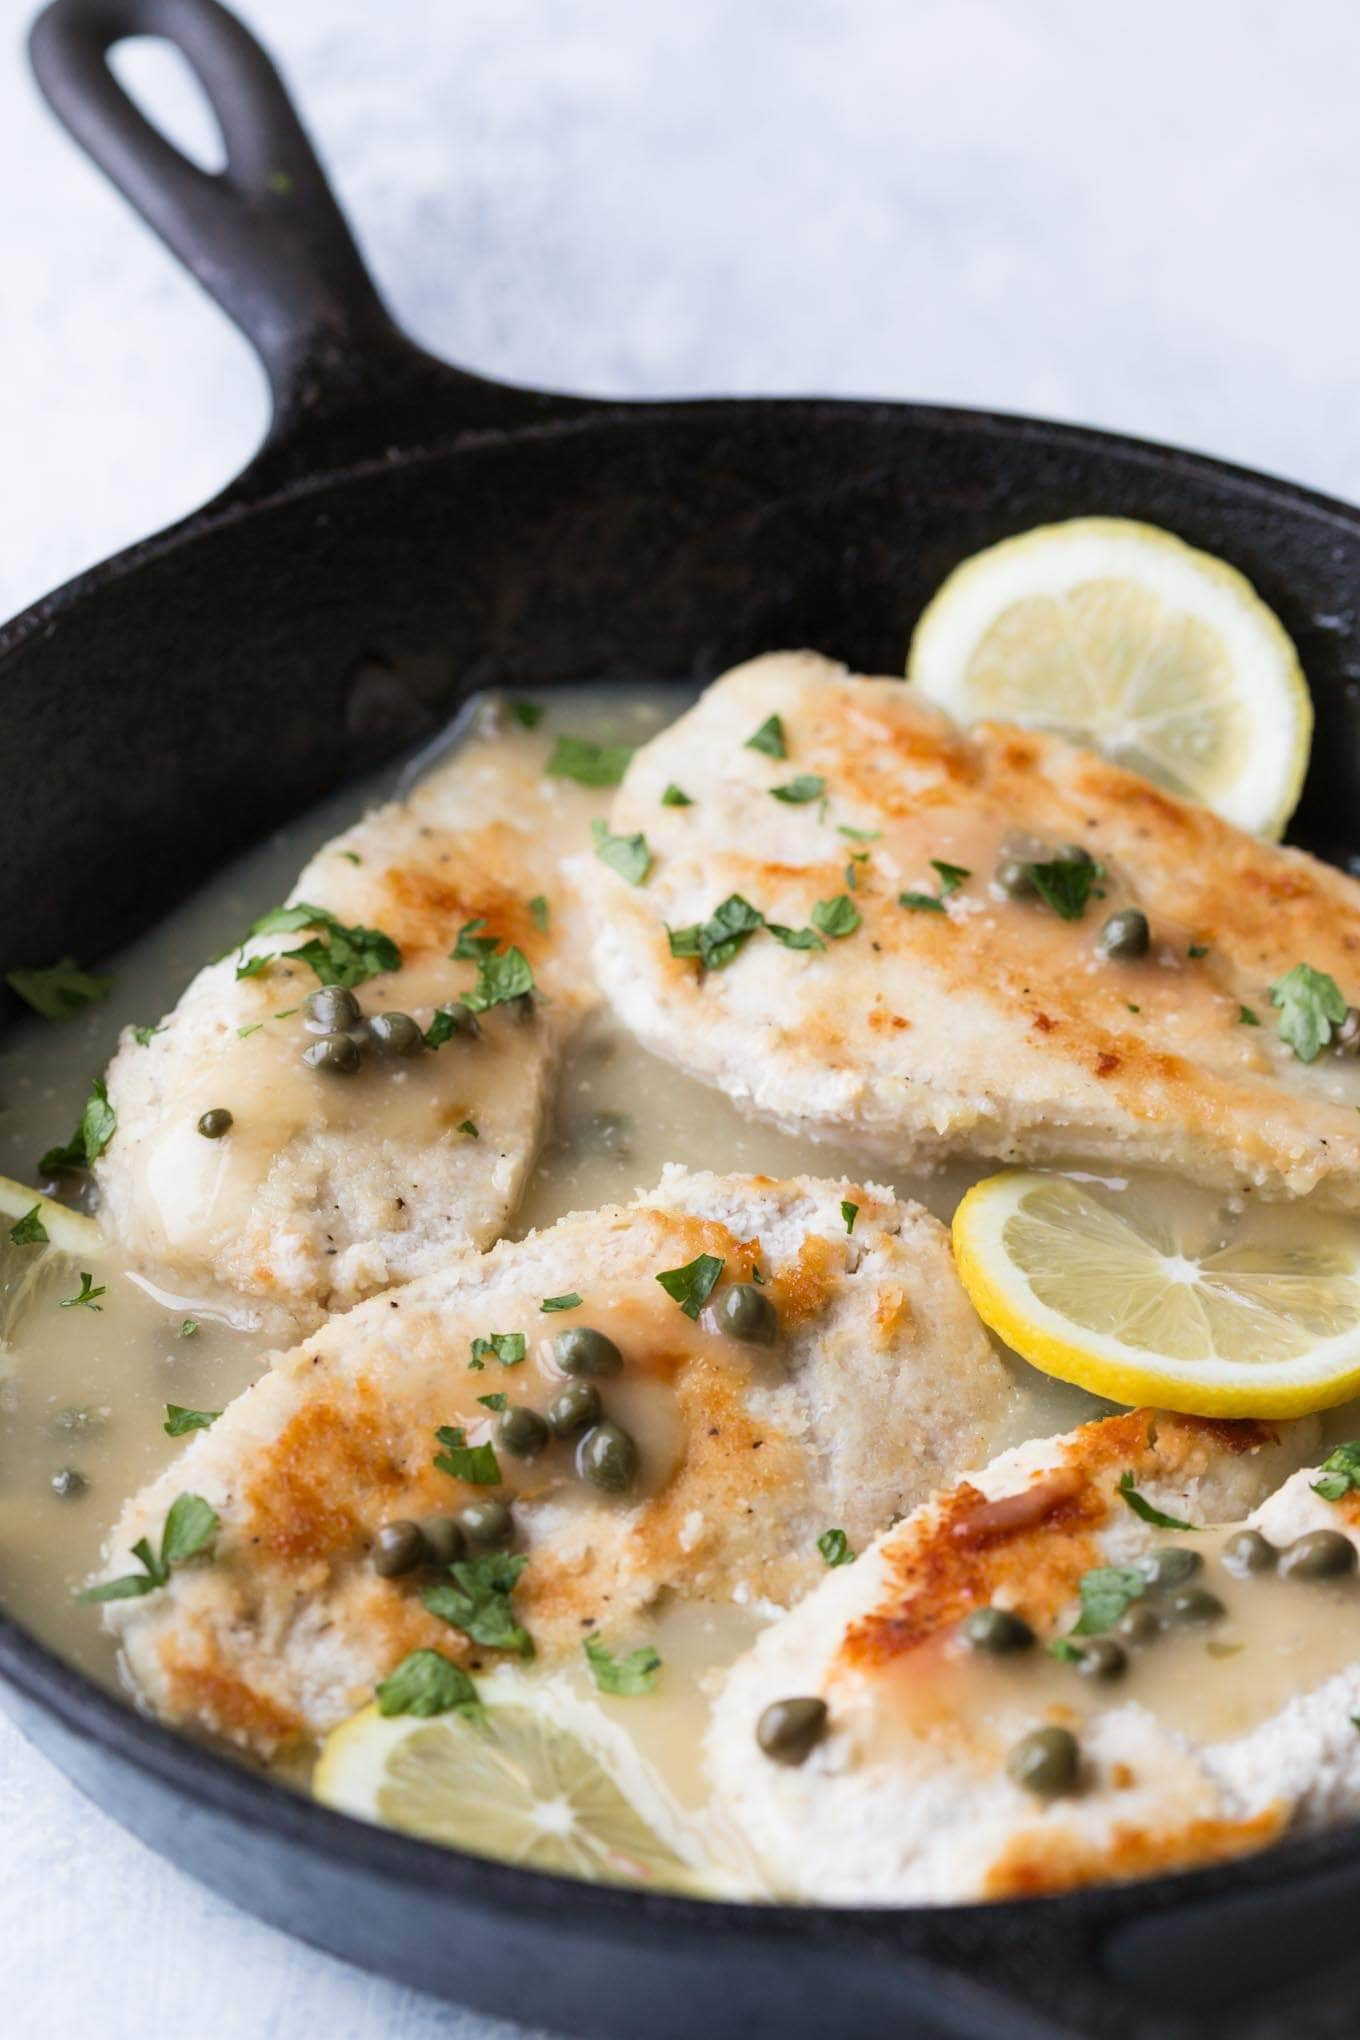 Easy Weeknight Whole30 Chicken Piccata,ready in less than 30 Minutes! This recipe is Paleo,Whole30, and low carb. Paleo Chicken Piccata